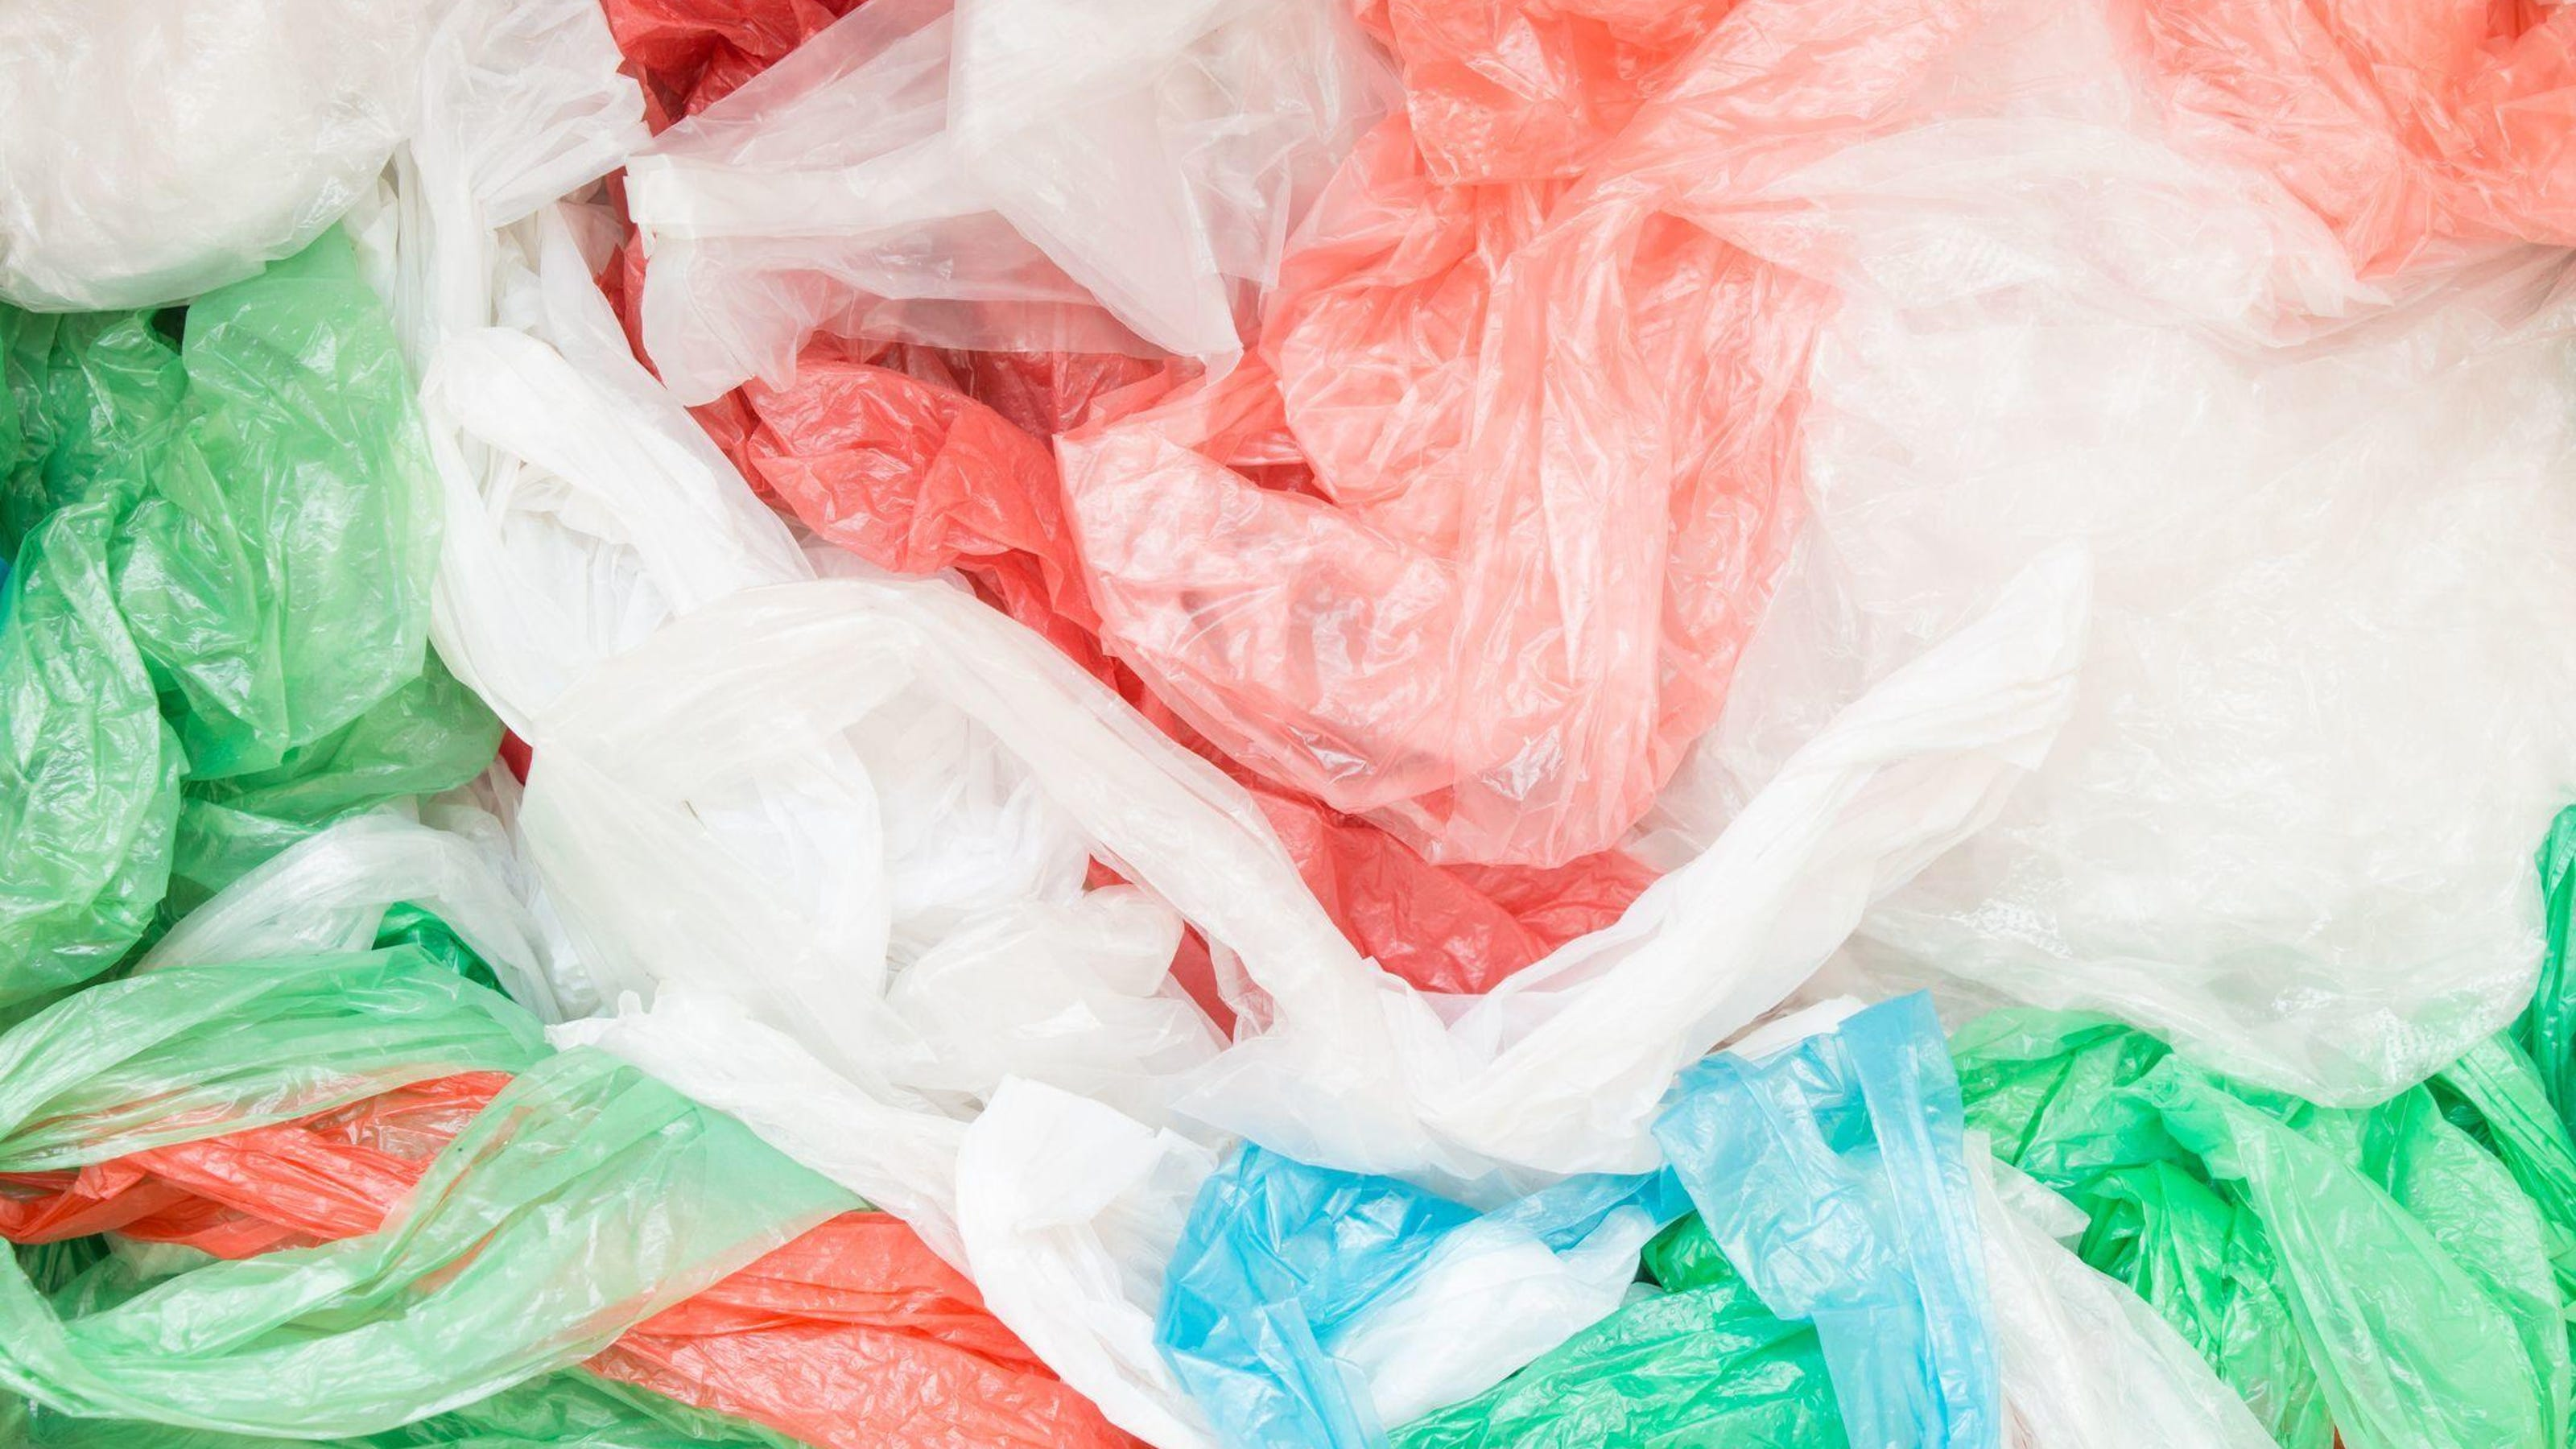 Editorial To Fee Or Not To Fee That S Still Question On Plastic Bags